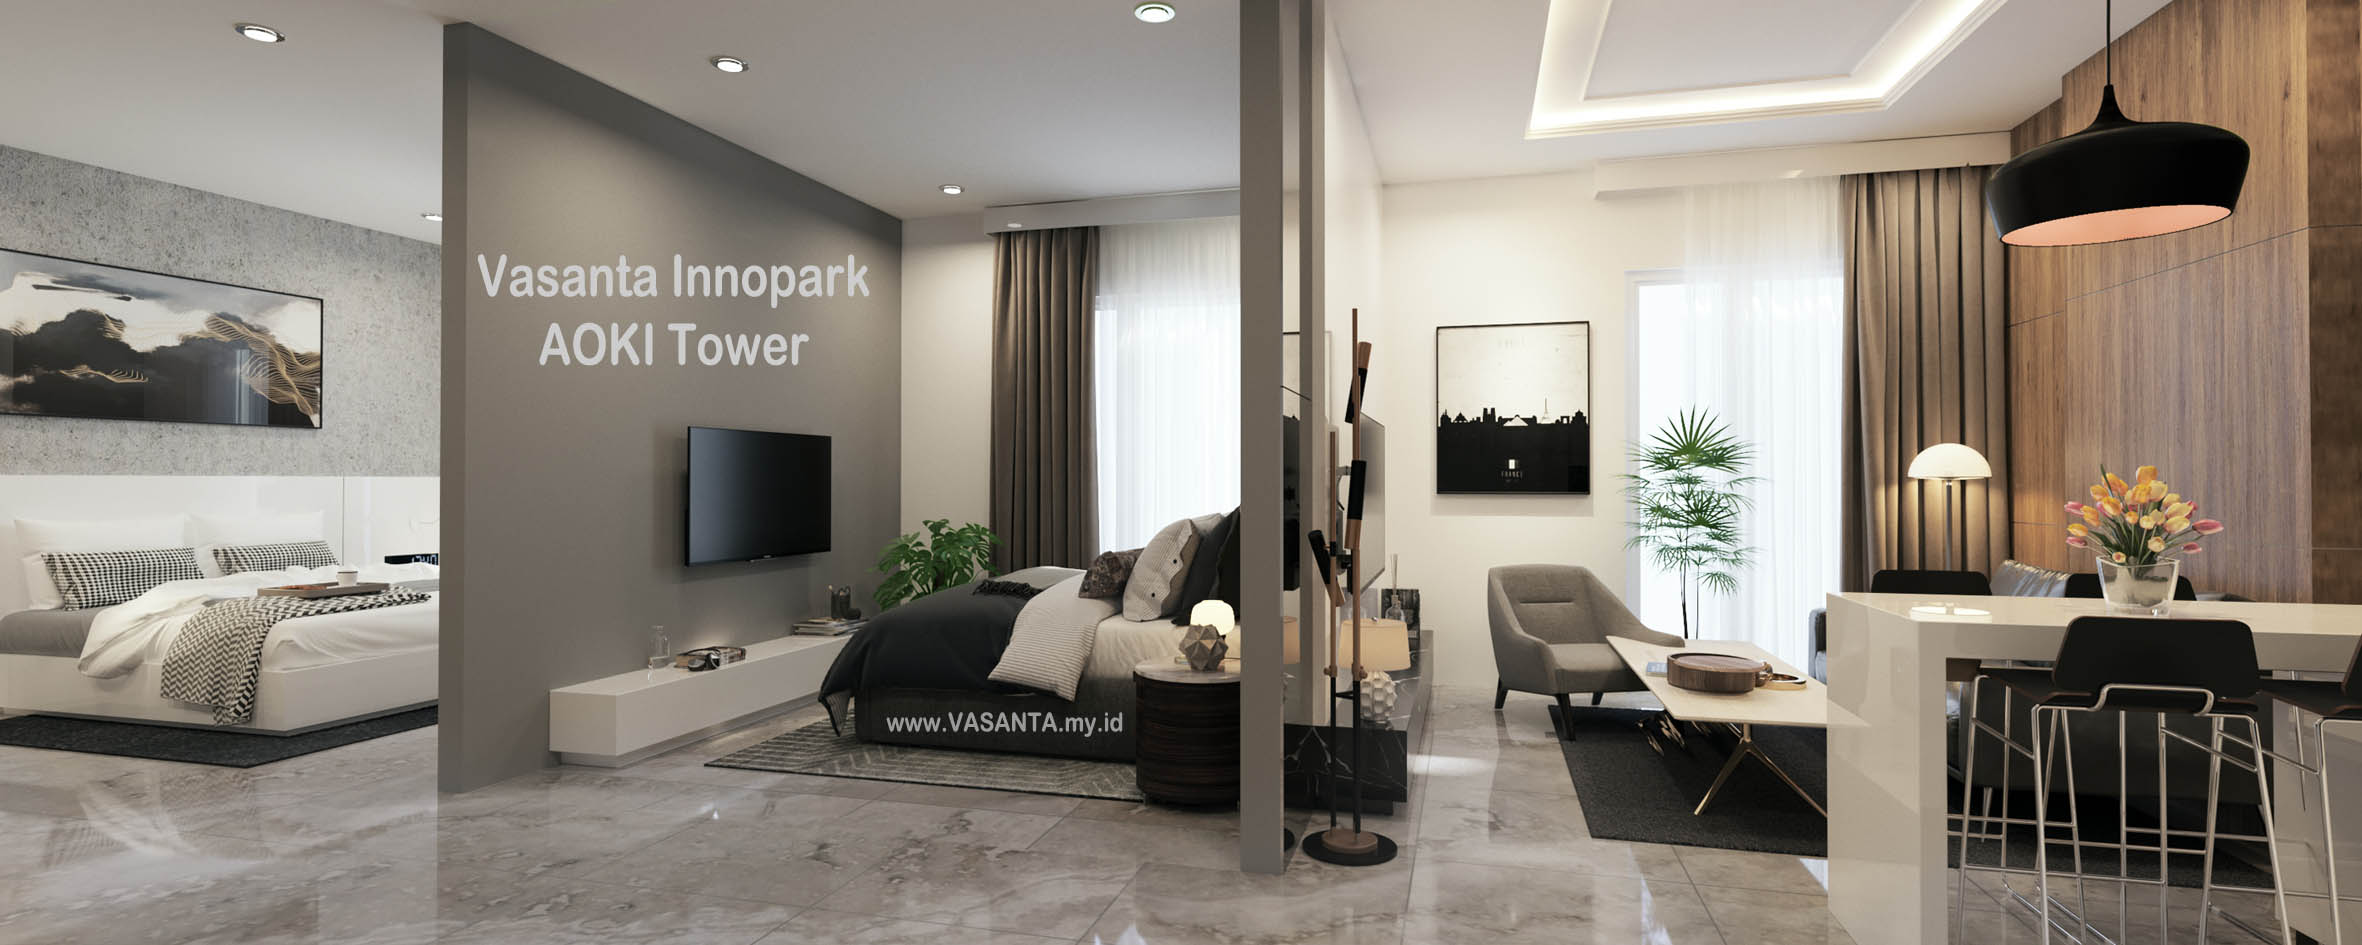 vasanta-innopark-tower-AOKI-type-2br-show-unit